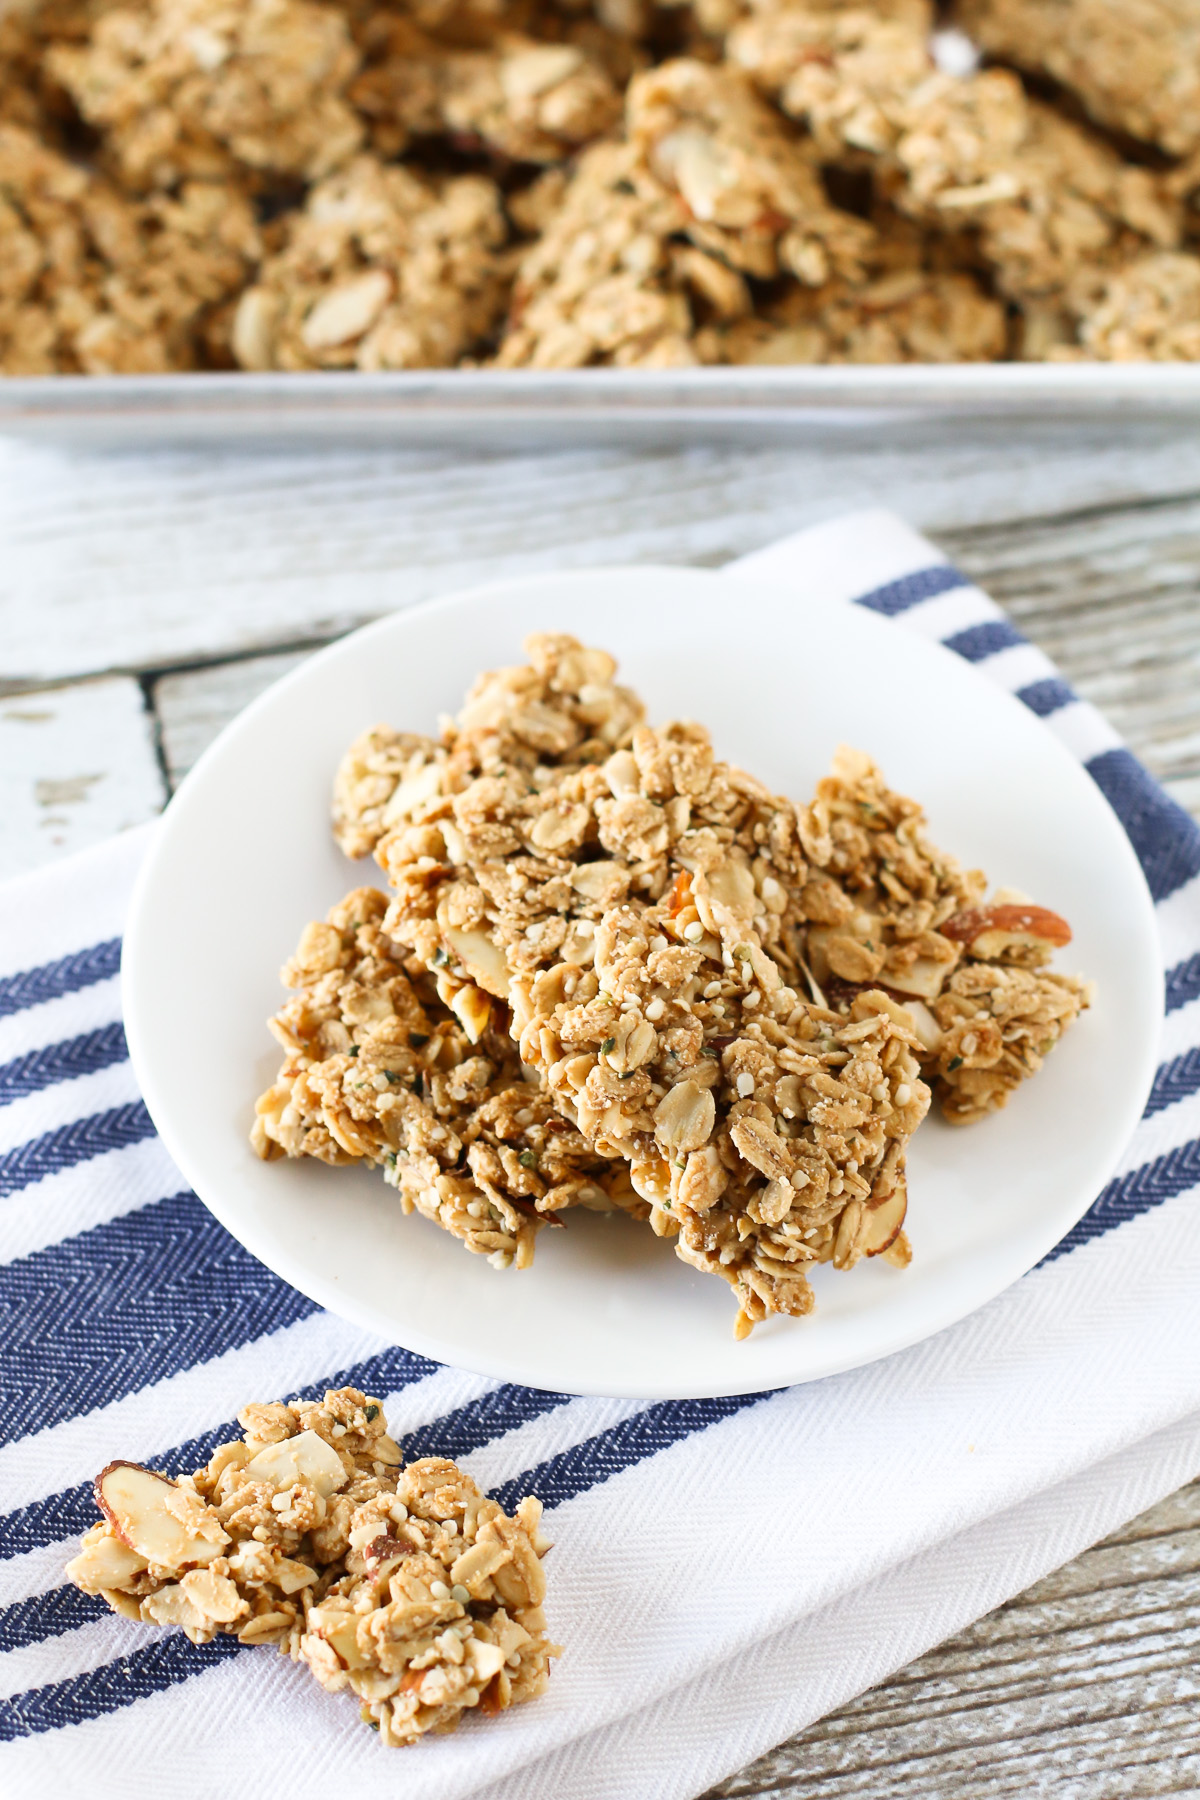 Gluten Free Vegan Maple Almond Granola Clusters. Crispy, crunchy clusters of maple-sweetened granola. Packed with protein too!